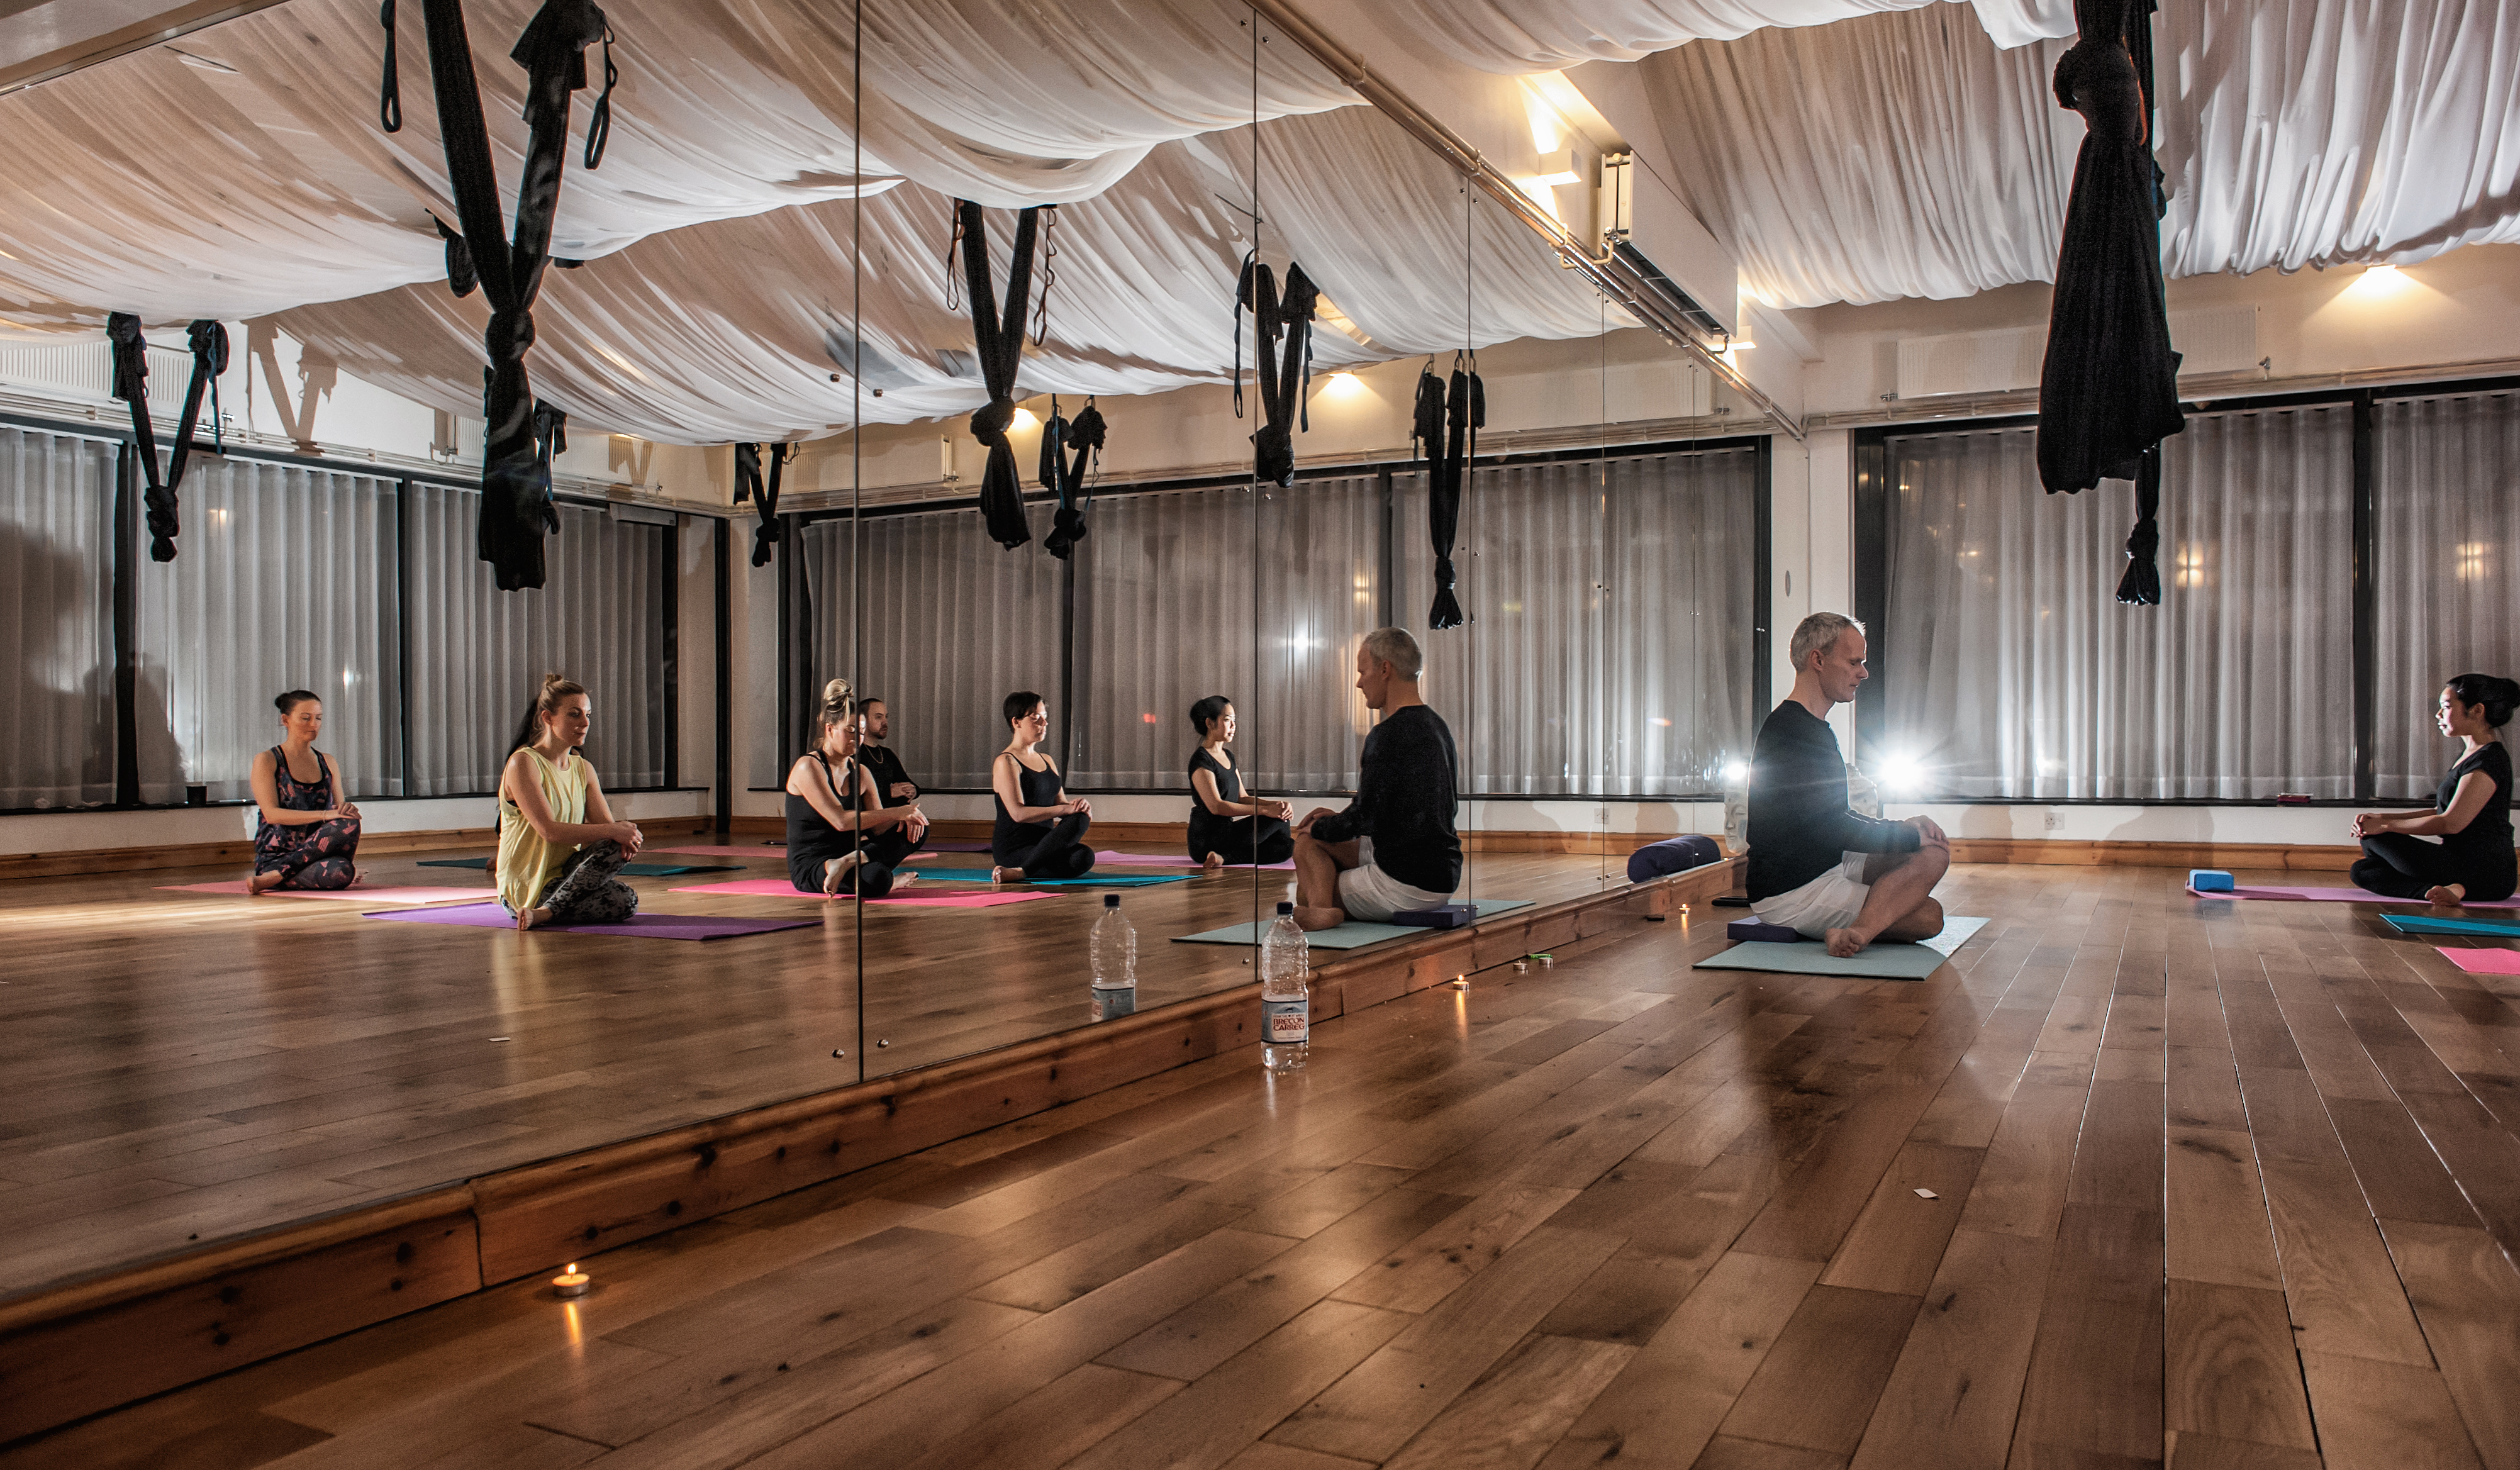 Liverpool's best summer yoga classes 3